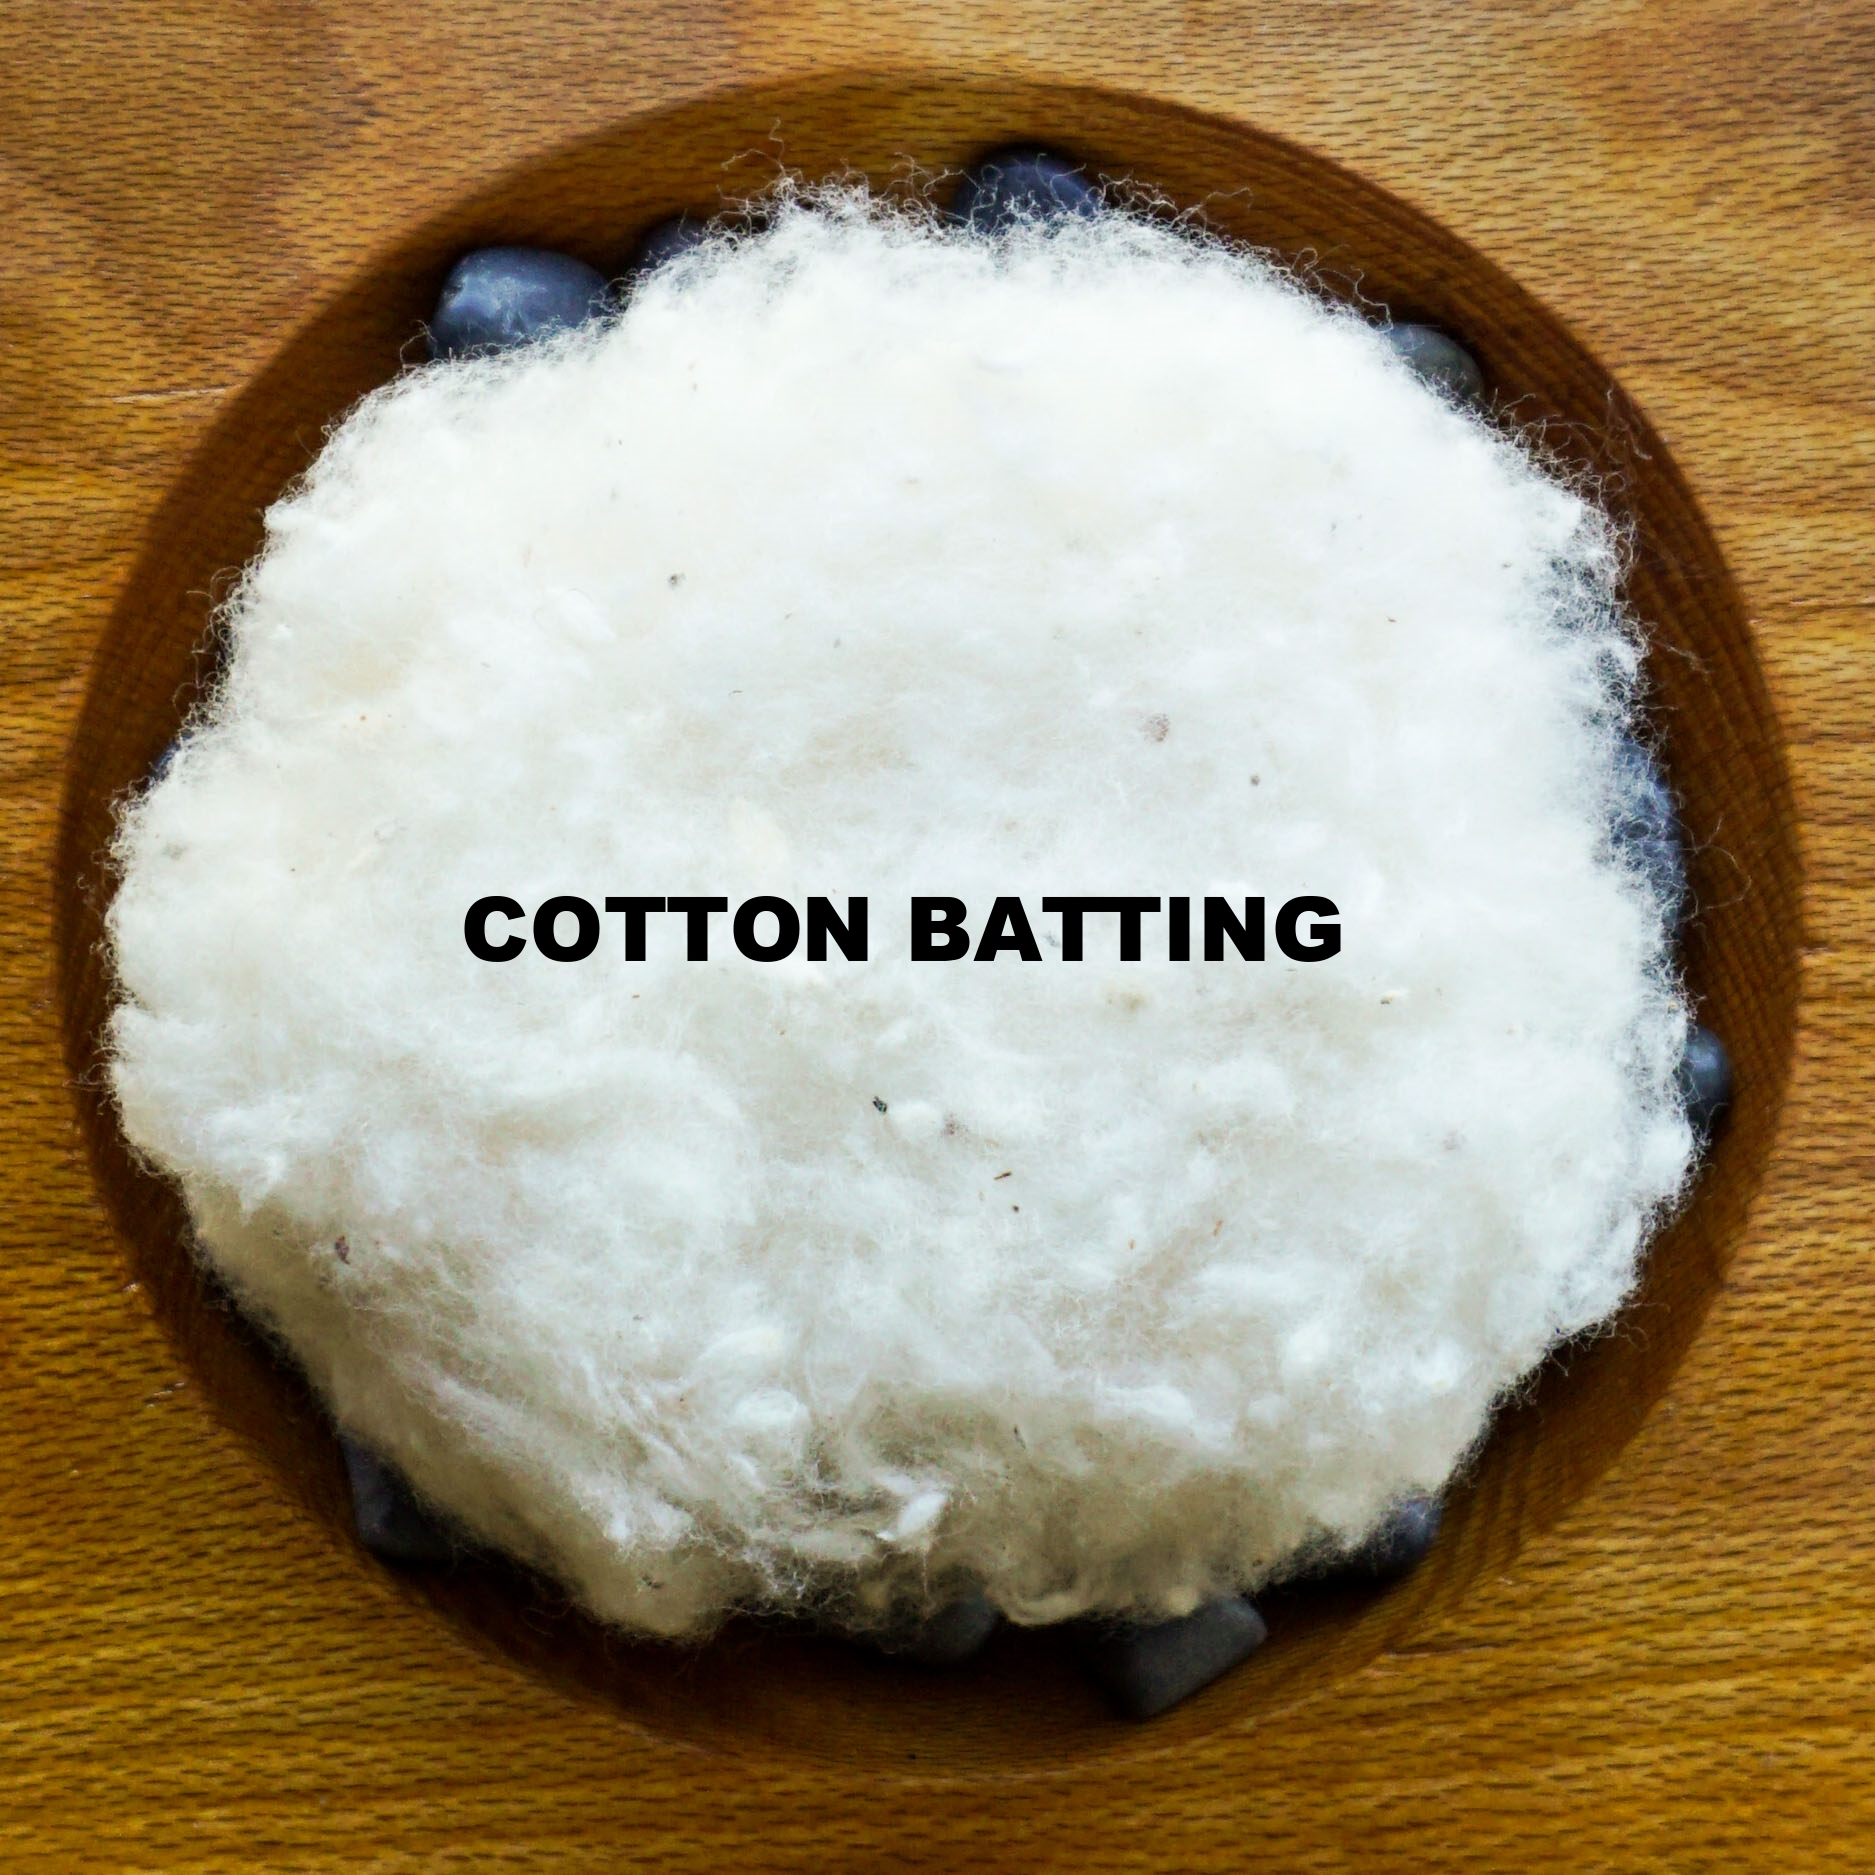 COTTON BATTING